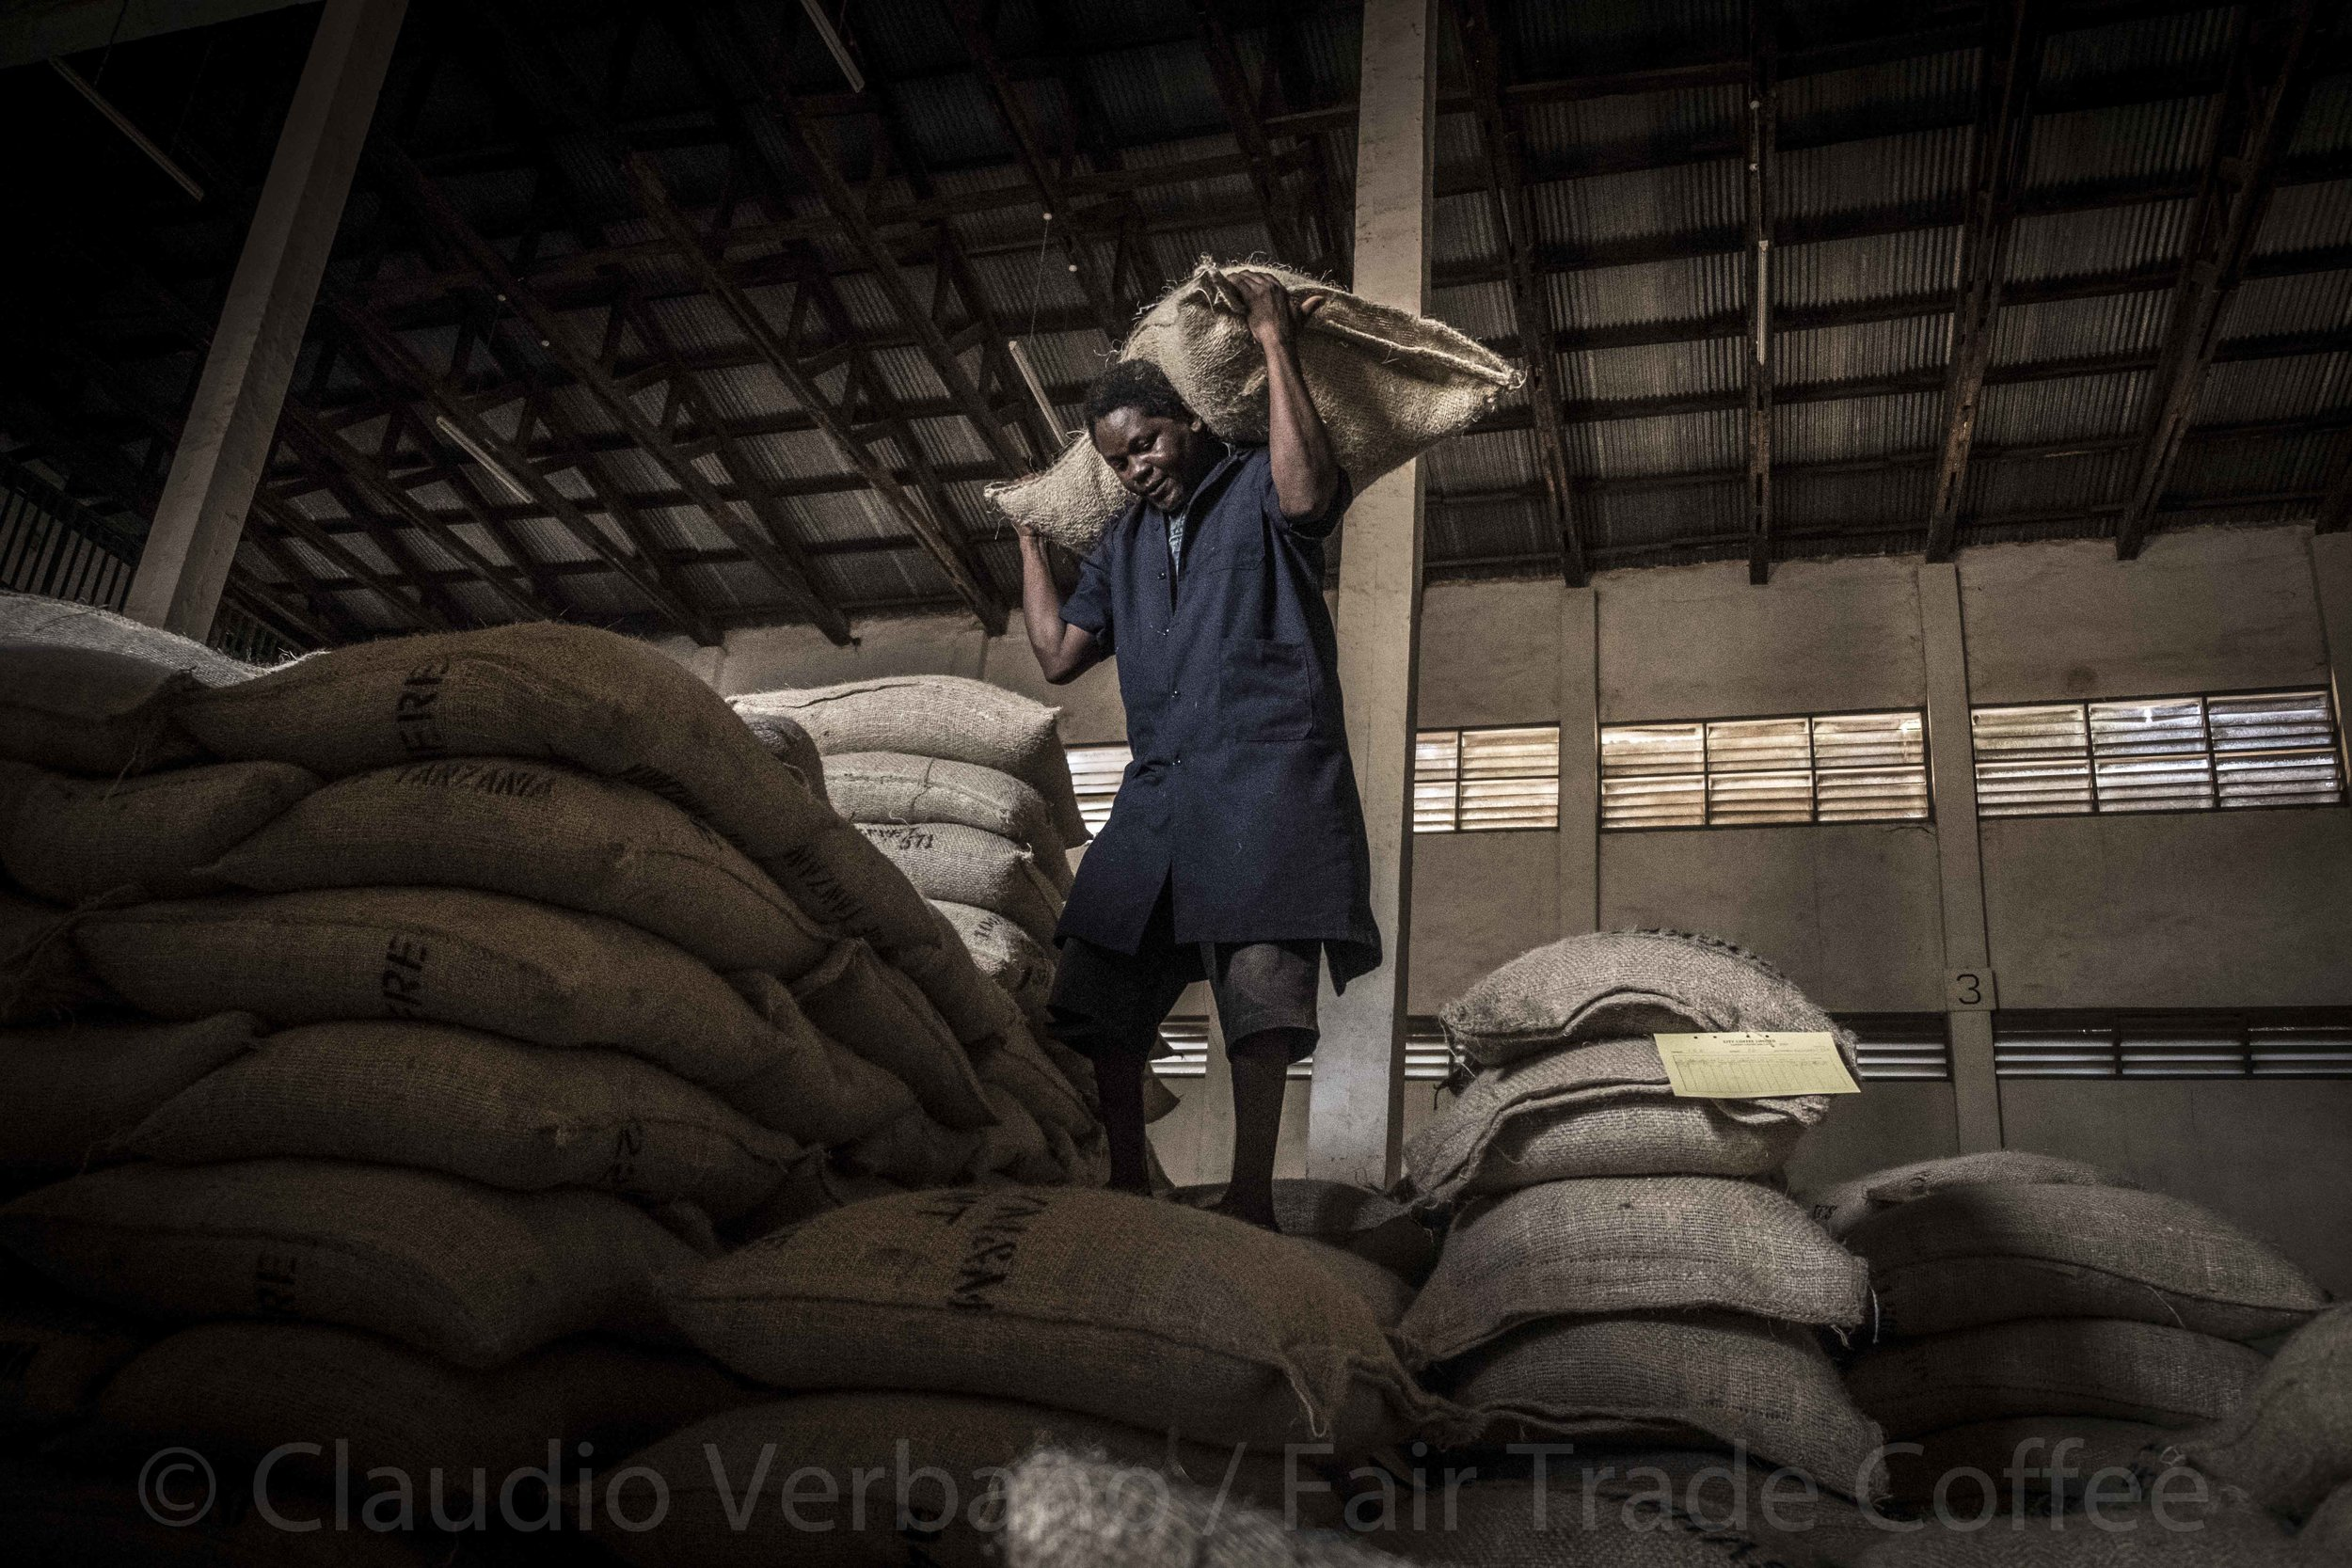 Fair Trade Coffee by Claudio Verbano 35.jpg